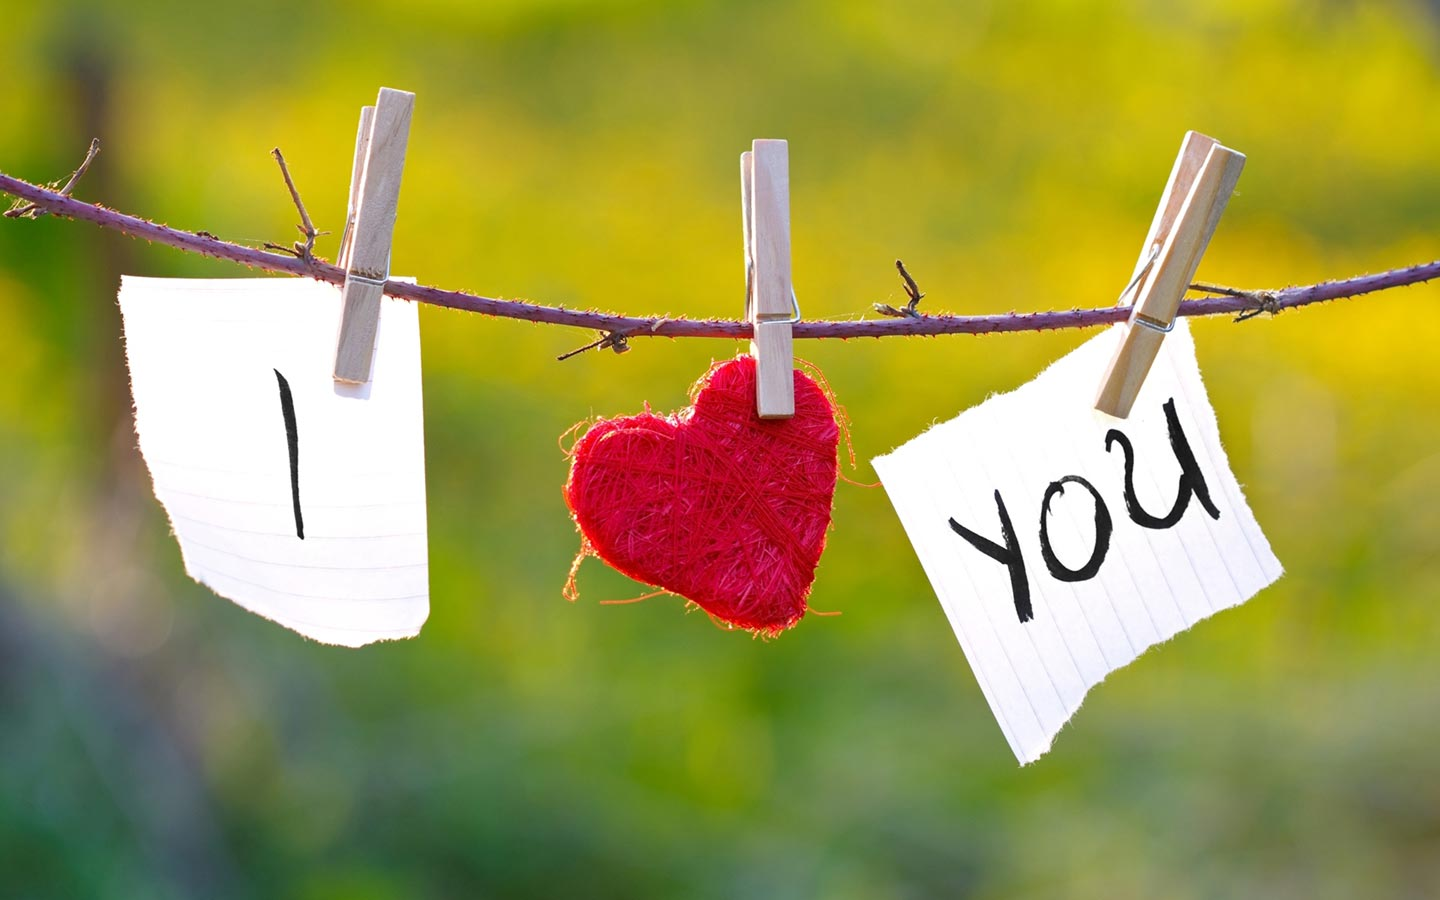 Wallpapers Sols I Love You Hd Wallpapers